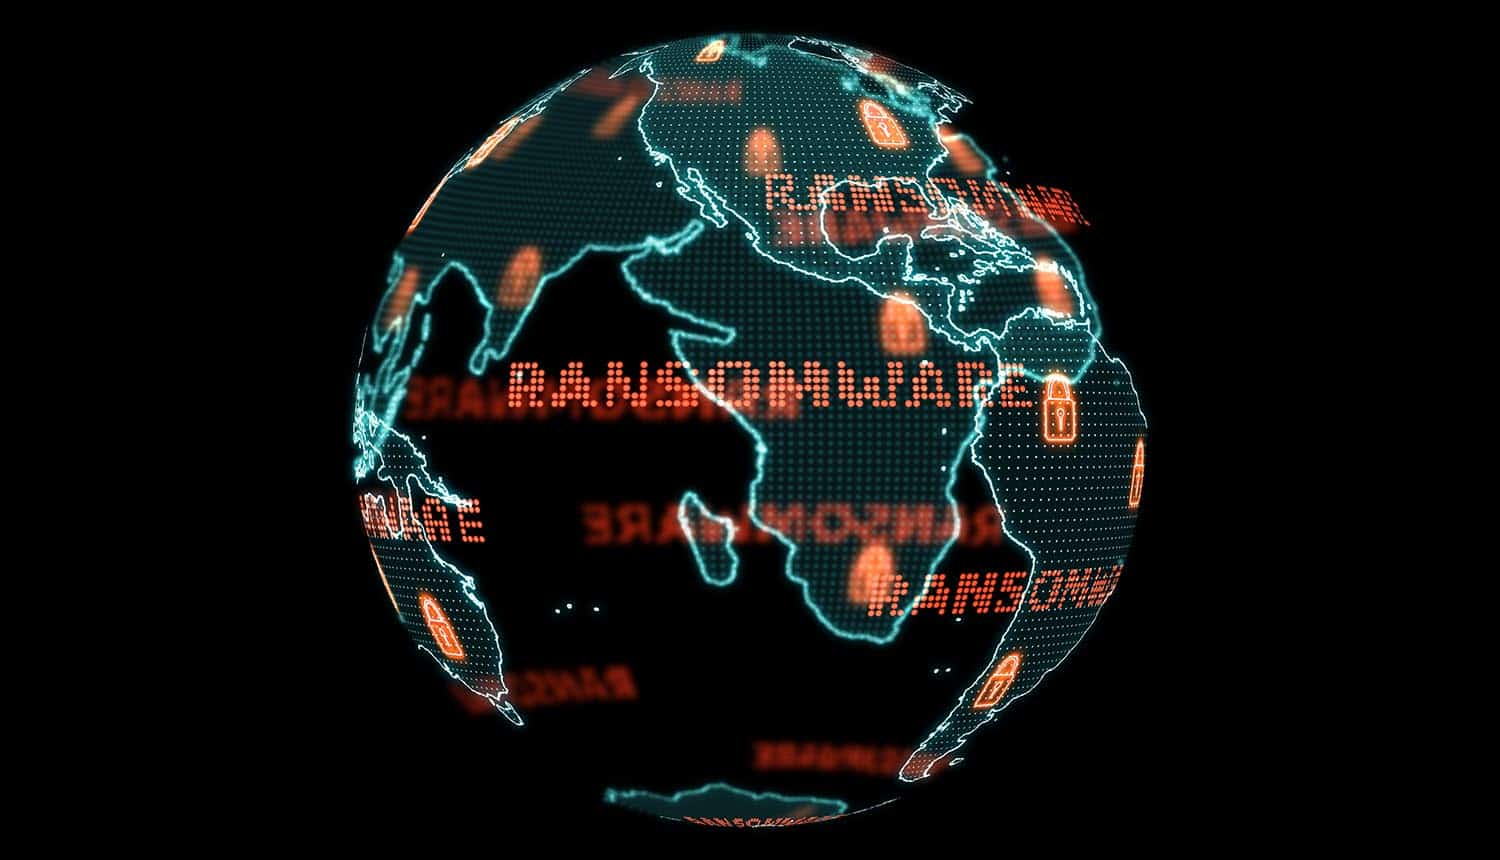 Digital global world map showing ransomware attack